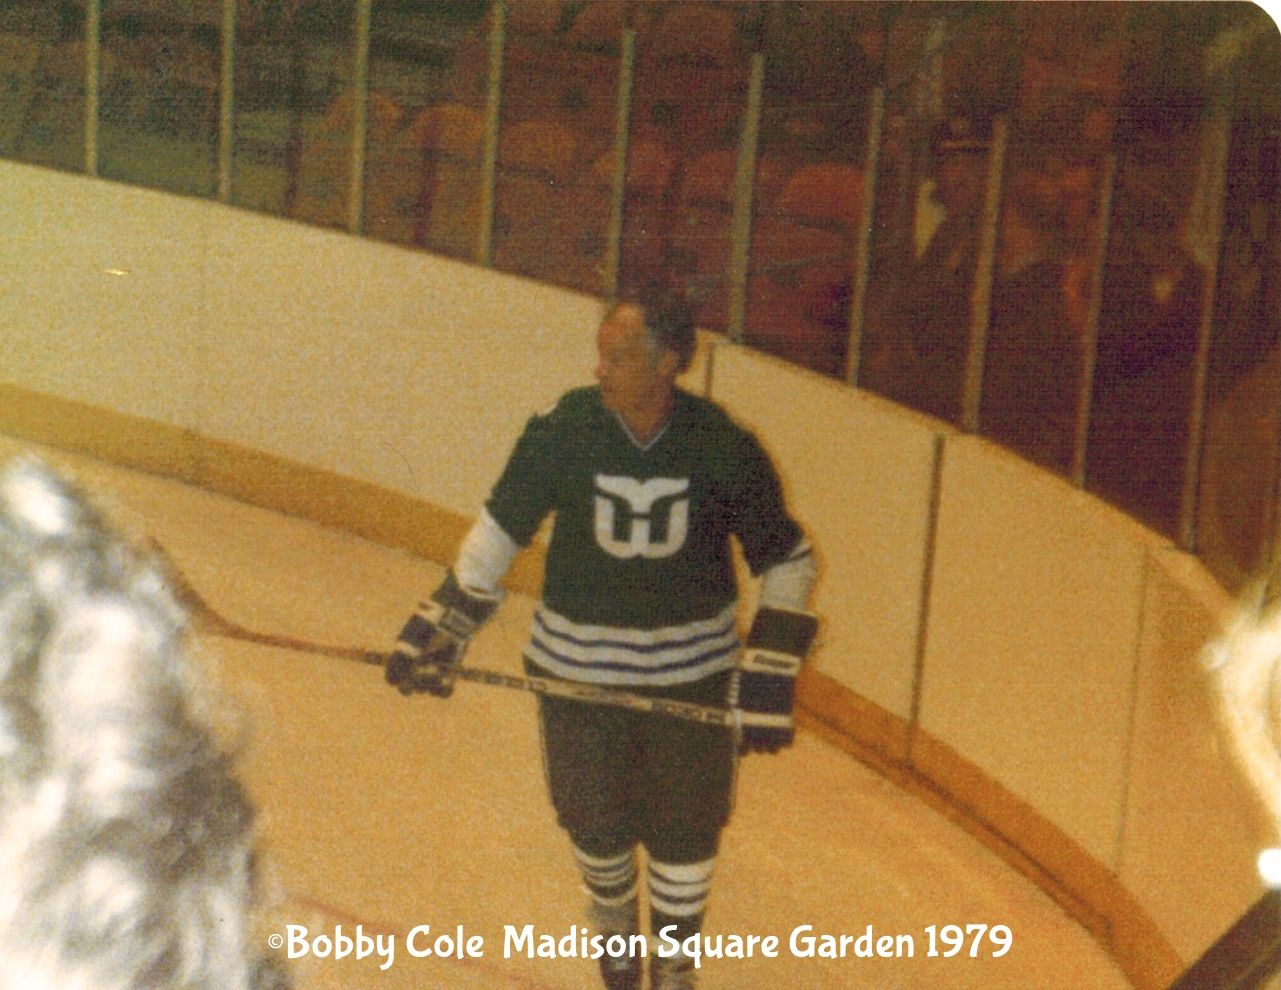 Took this shot of Gordie Howe at Madison Square Garden 1979 ...